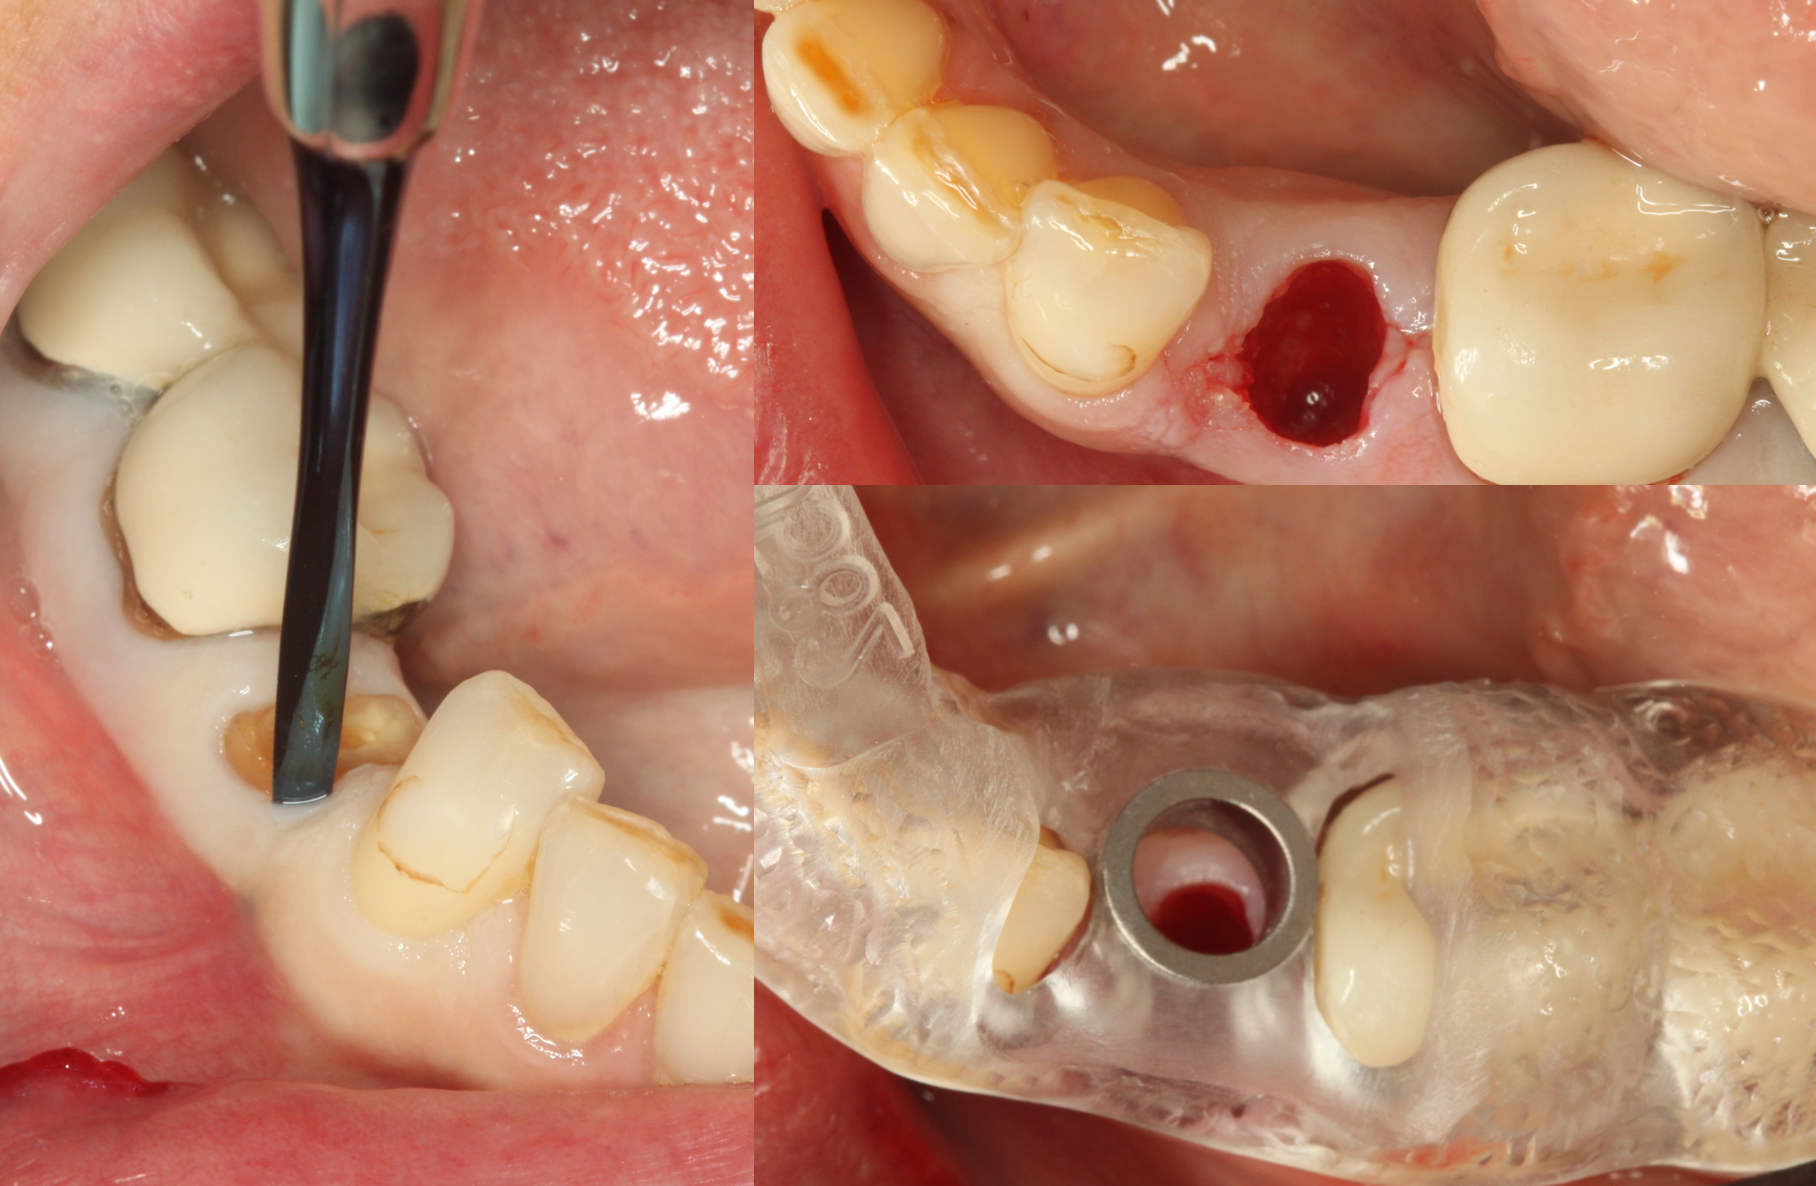 The root tip was removed atraumatically using periotomes and an Optiguide which was ordered from SICAT, Sirona's guide lab, was seated.